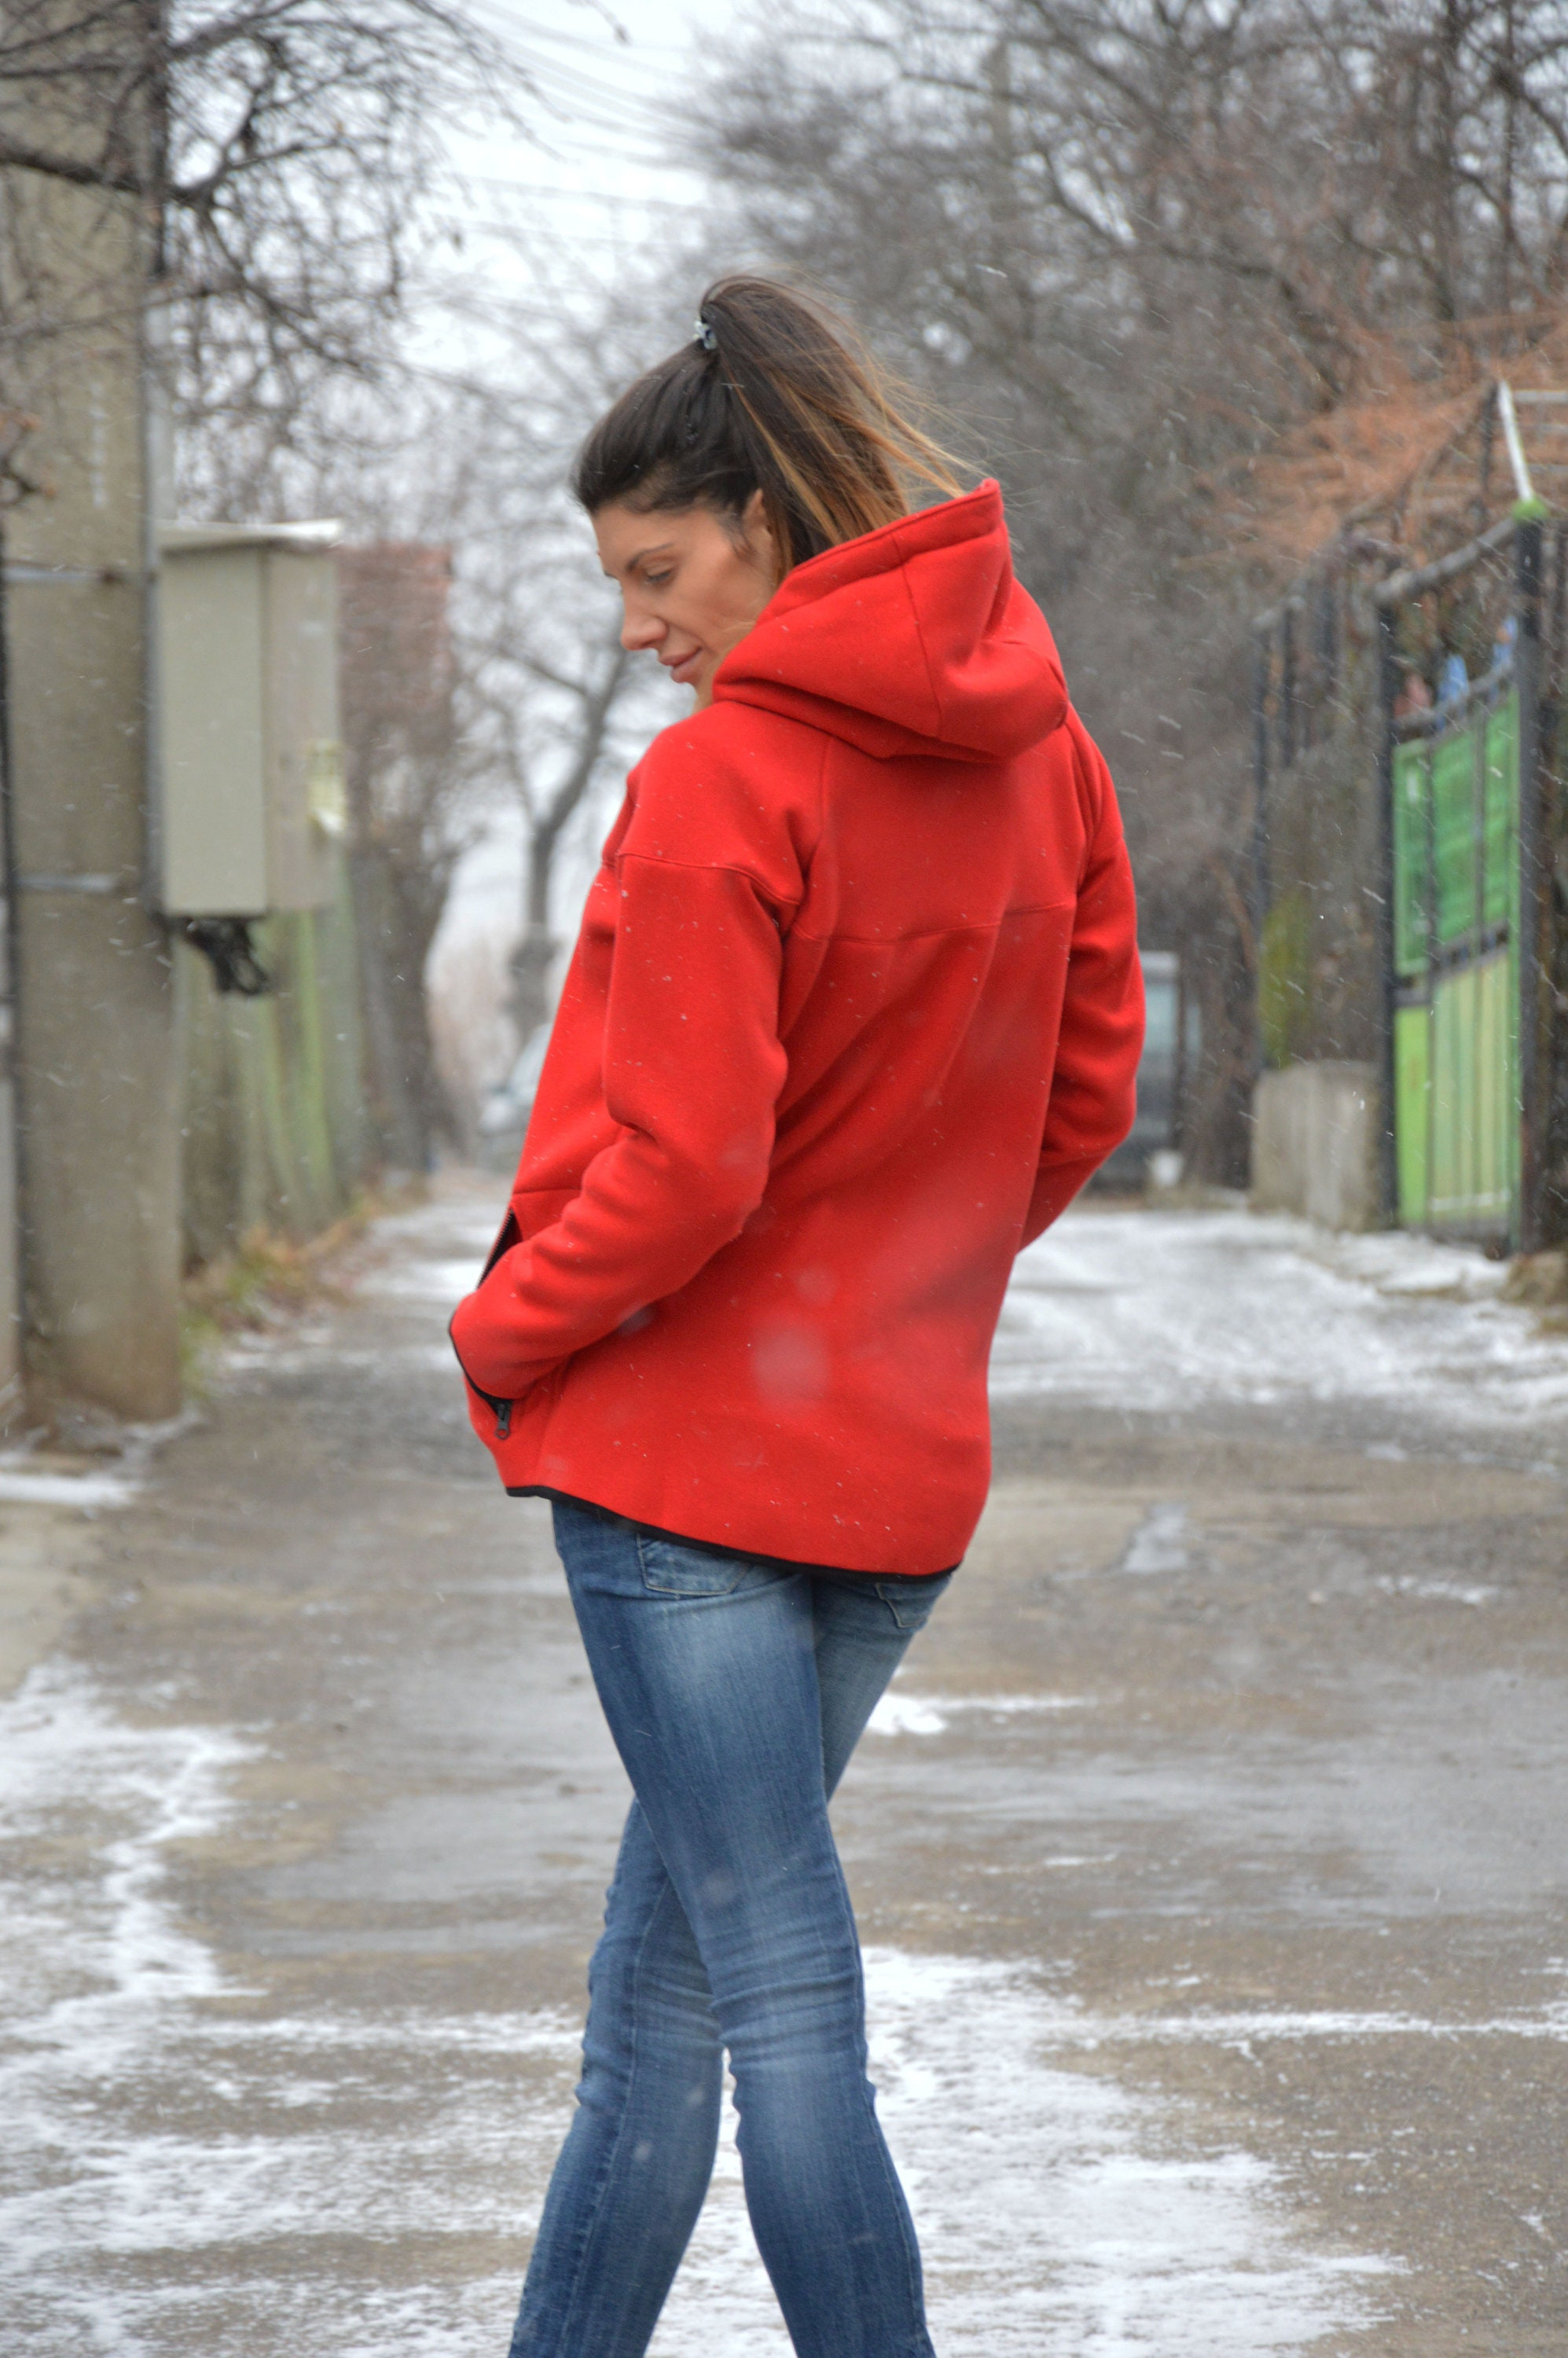 ebcbf8db887 Red Hooded Sweater Jacket